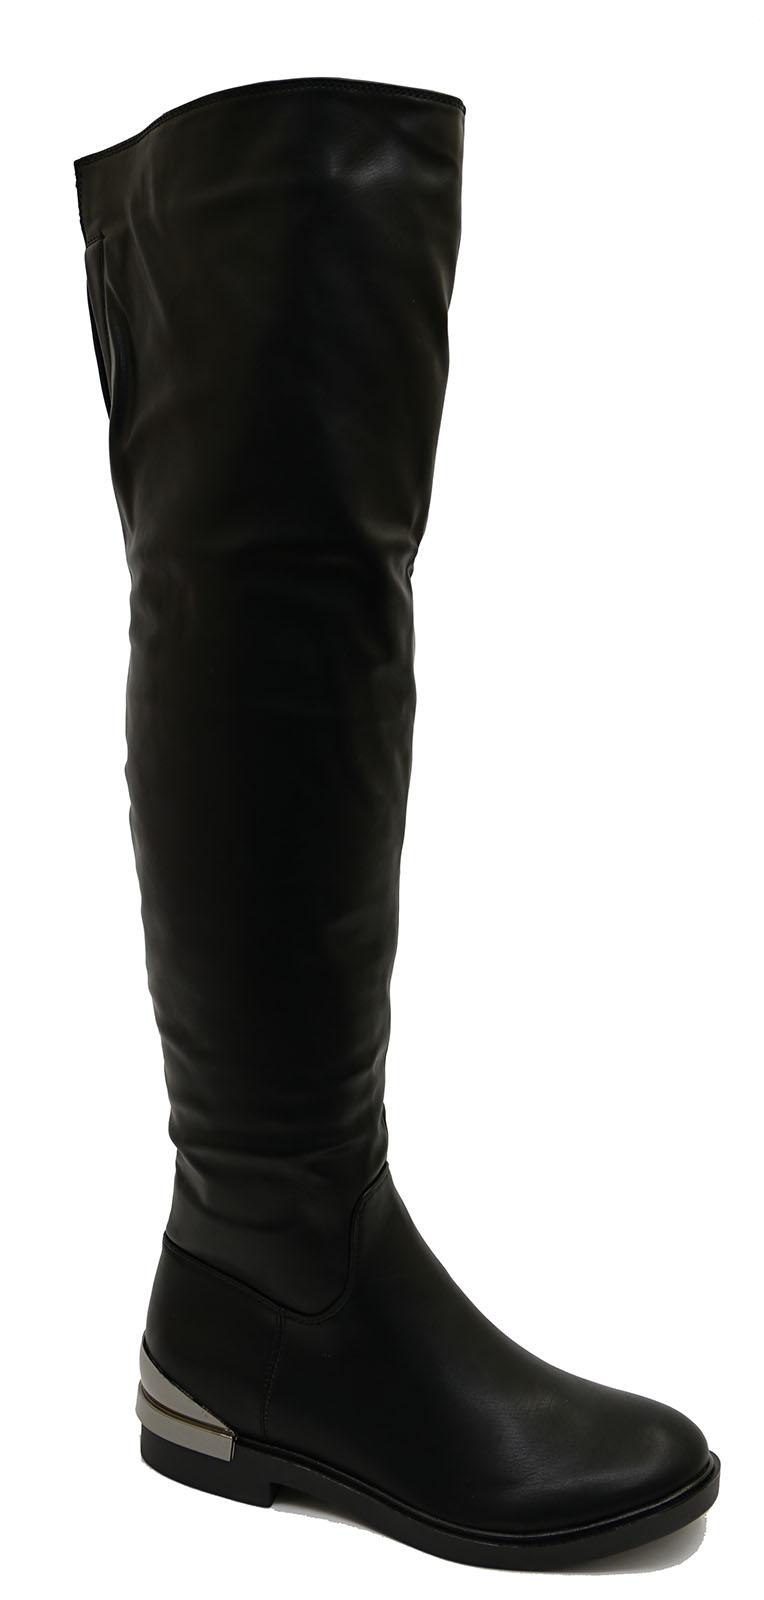 thumbnail 10 - LADIES-BLACK-FLAT-OVER-THE-KNEE-HIGH-TALL-ZIP-UP-RIDING-WORK-BOOTS-SHOES-UK-3-8